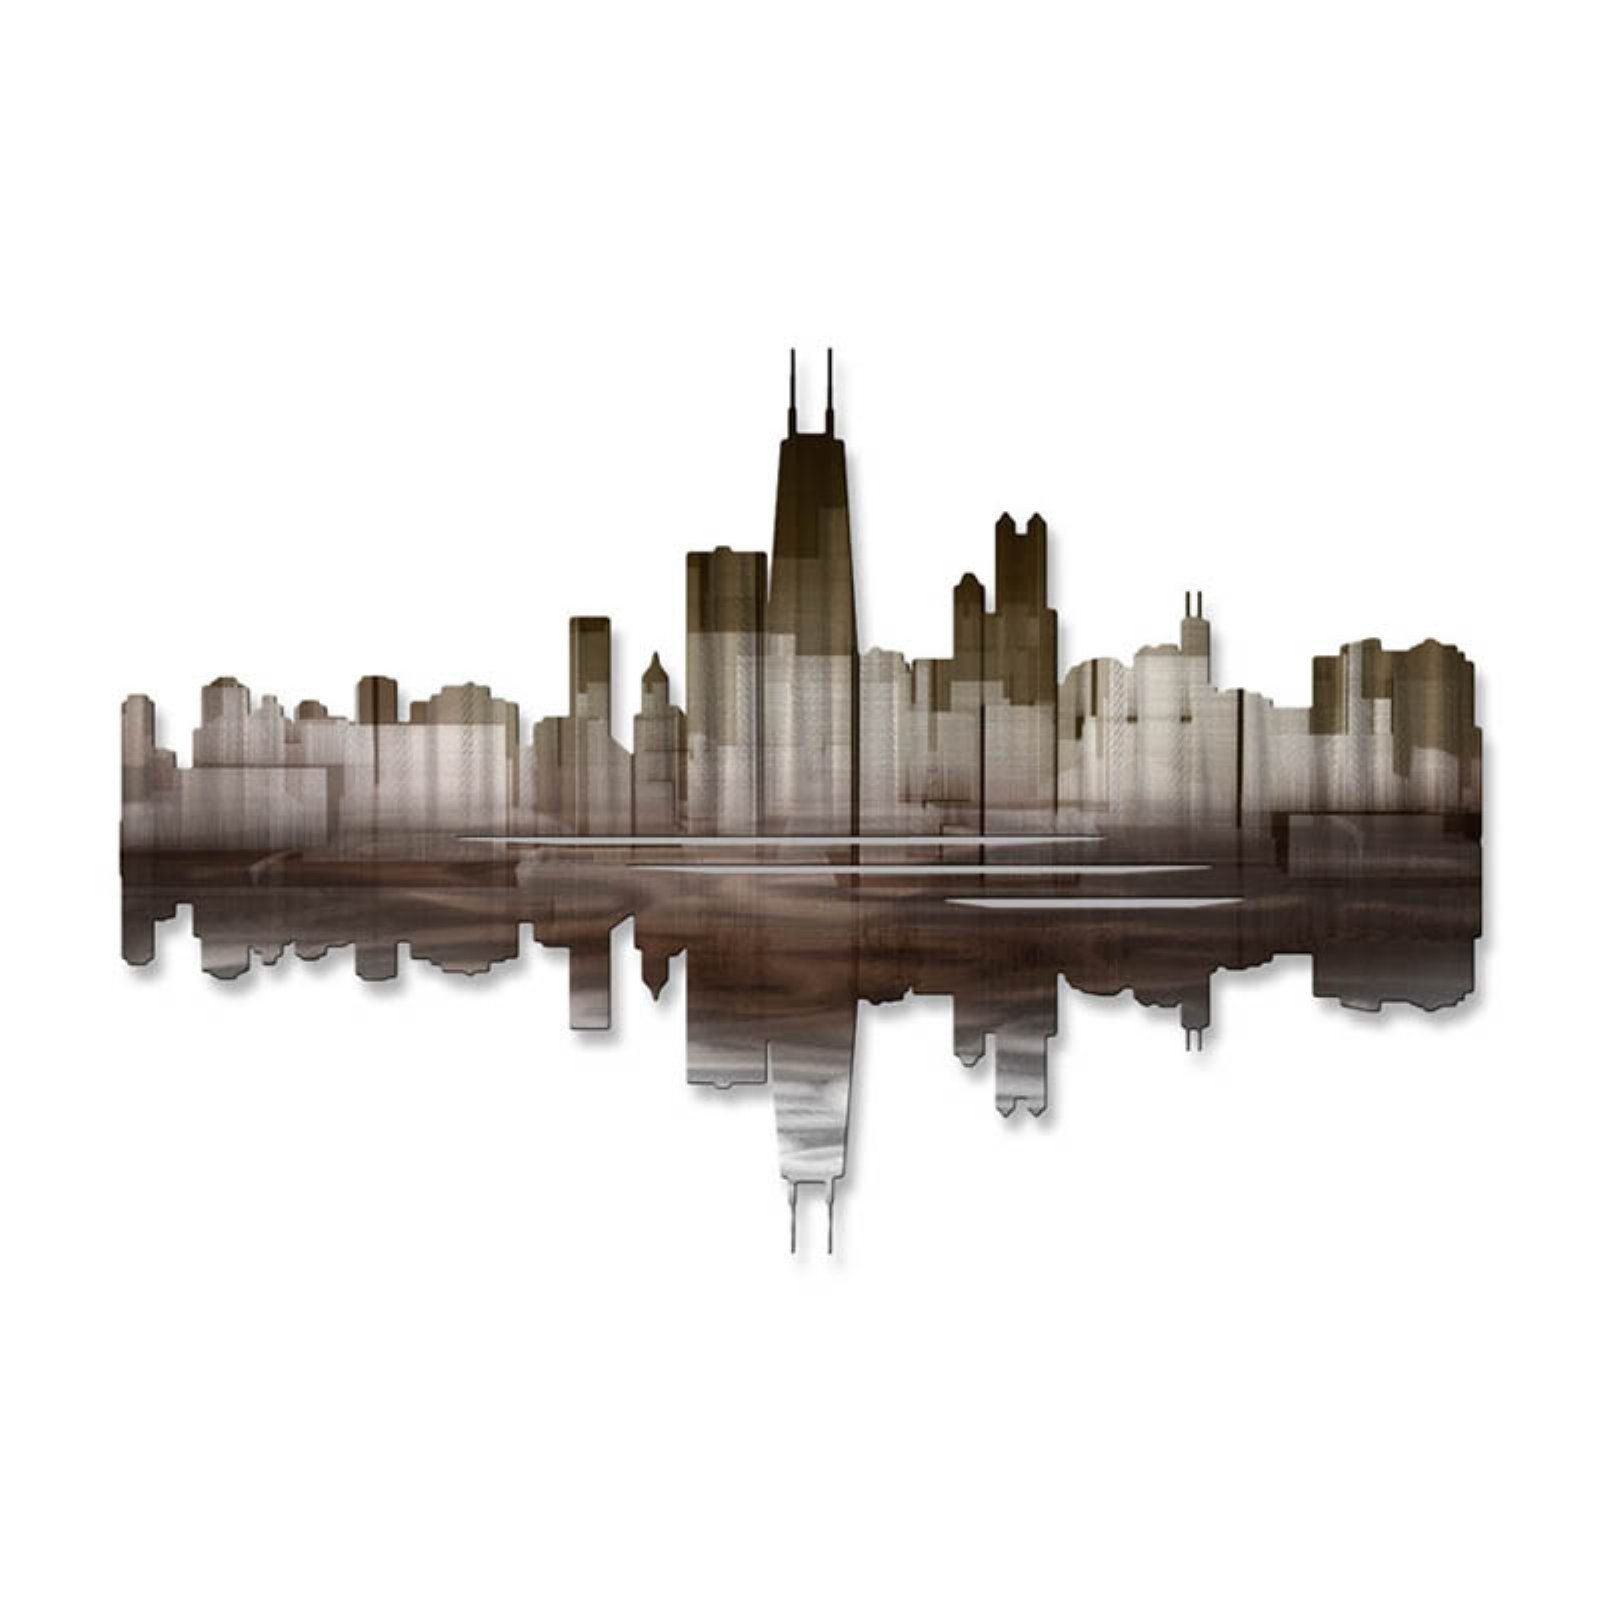 Chicago Reflection III Metal Wall Art - 30W x 20H in.